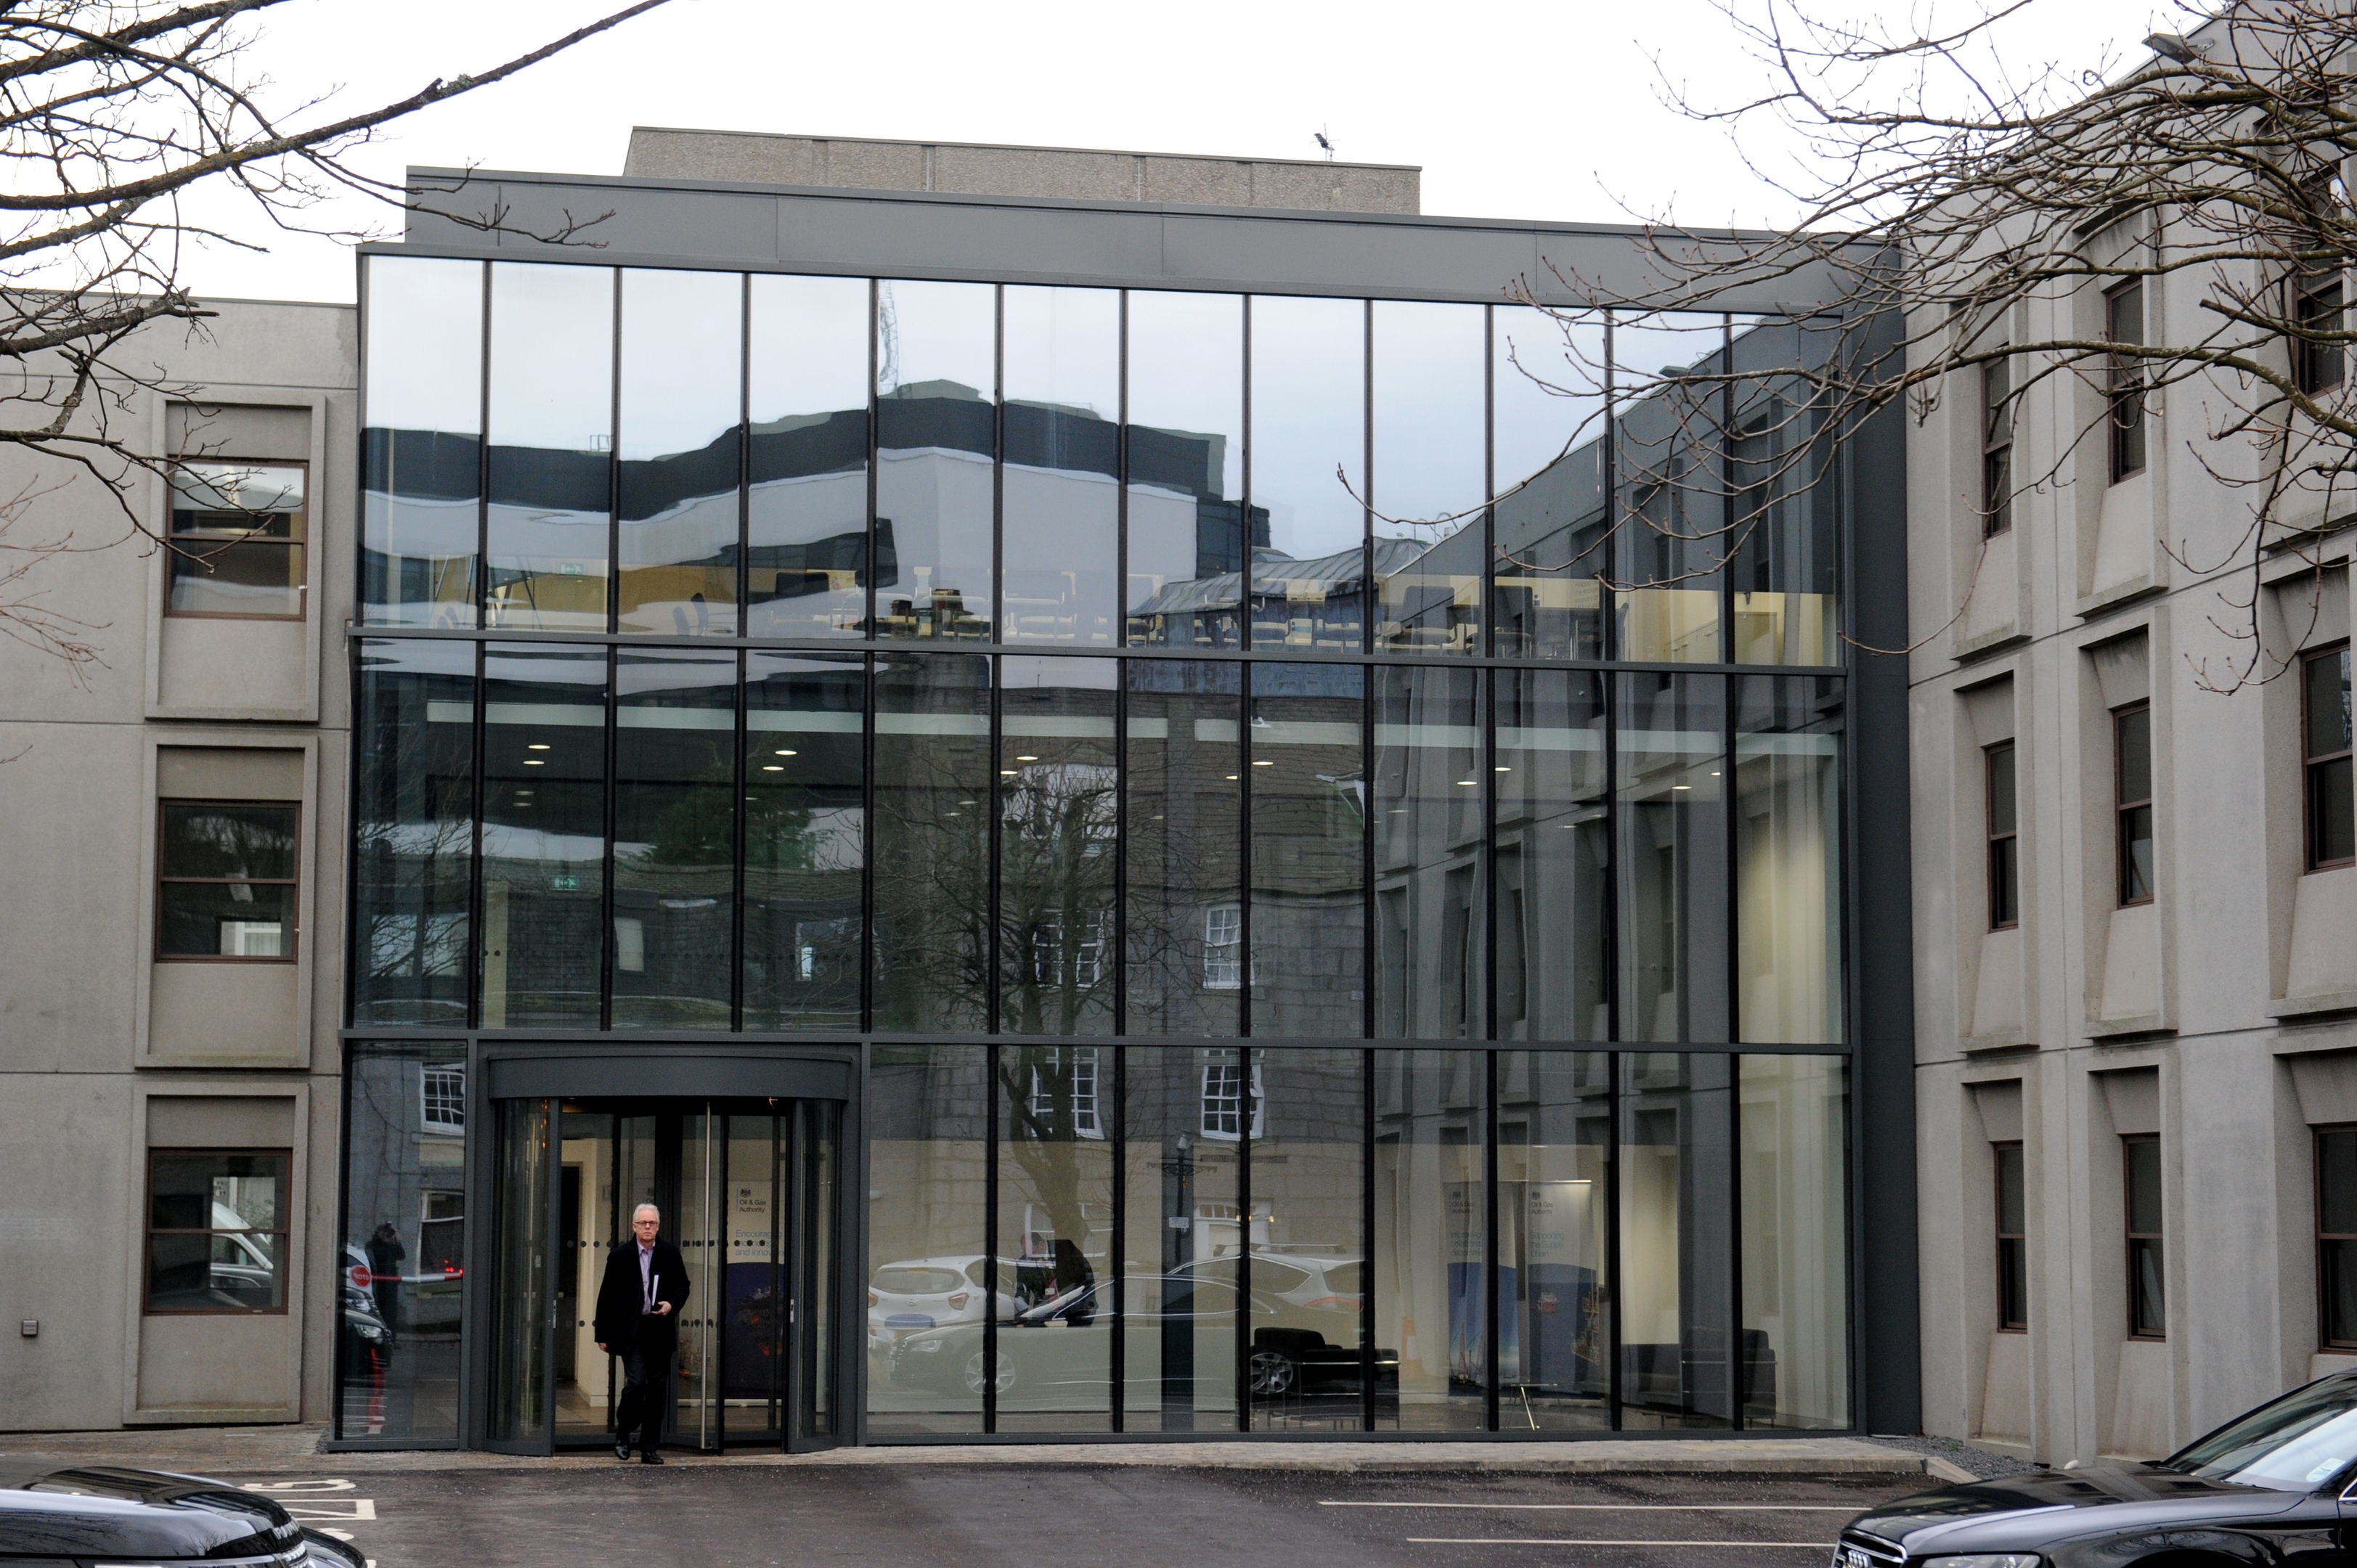 The Oil and Gas Authority (OGA) building in Aberdeen.